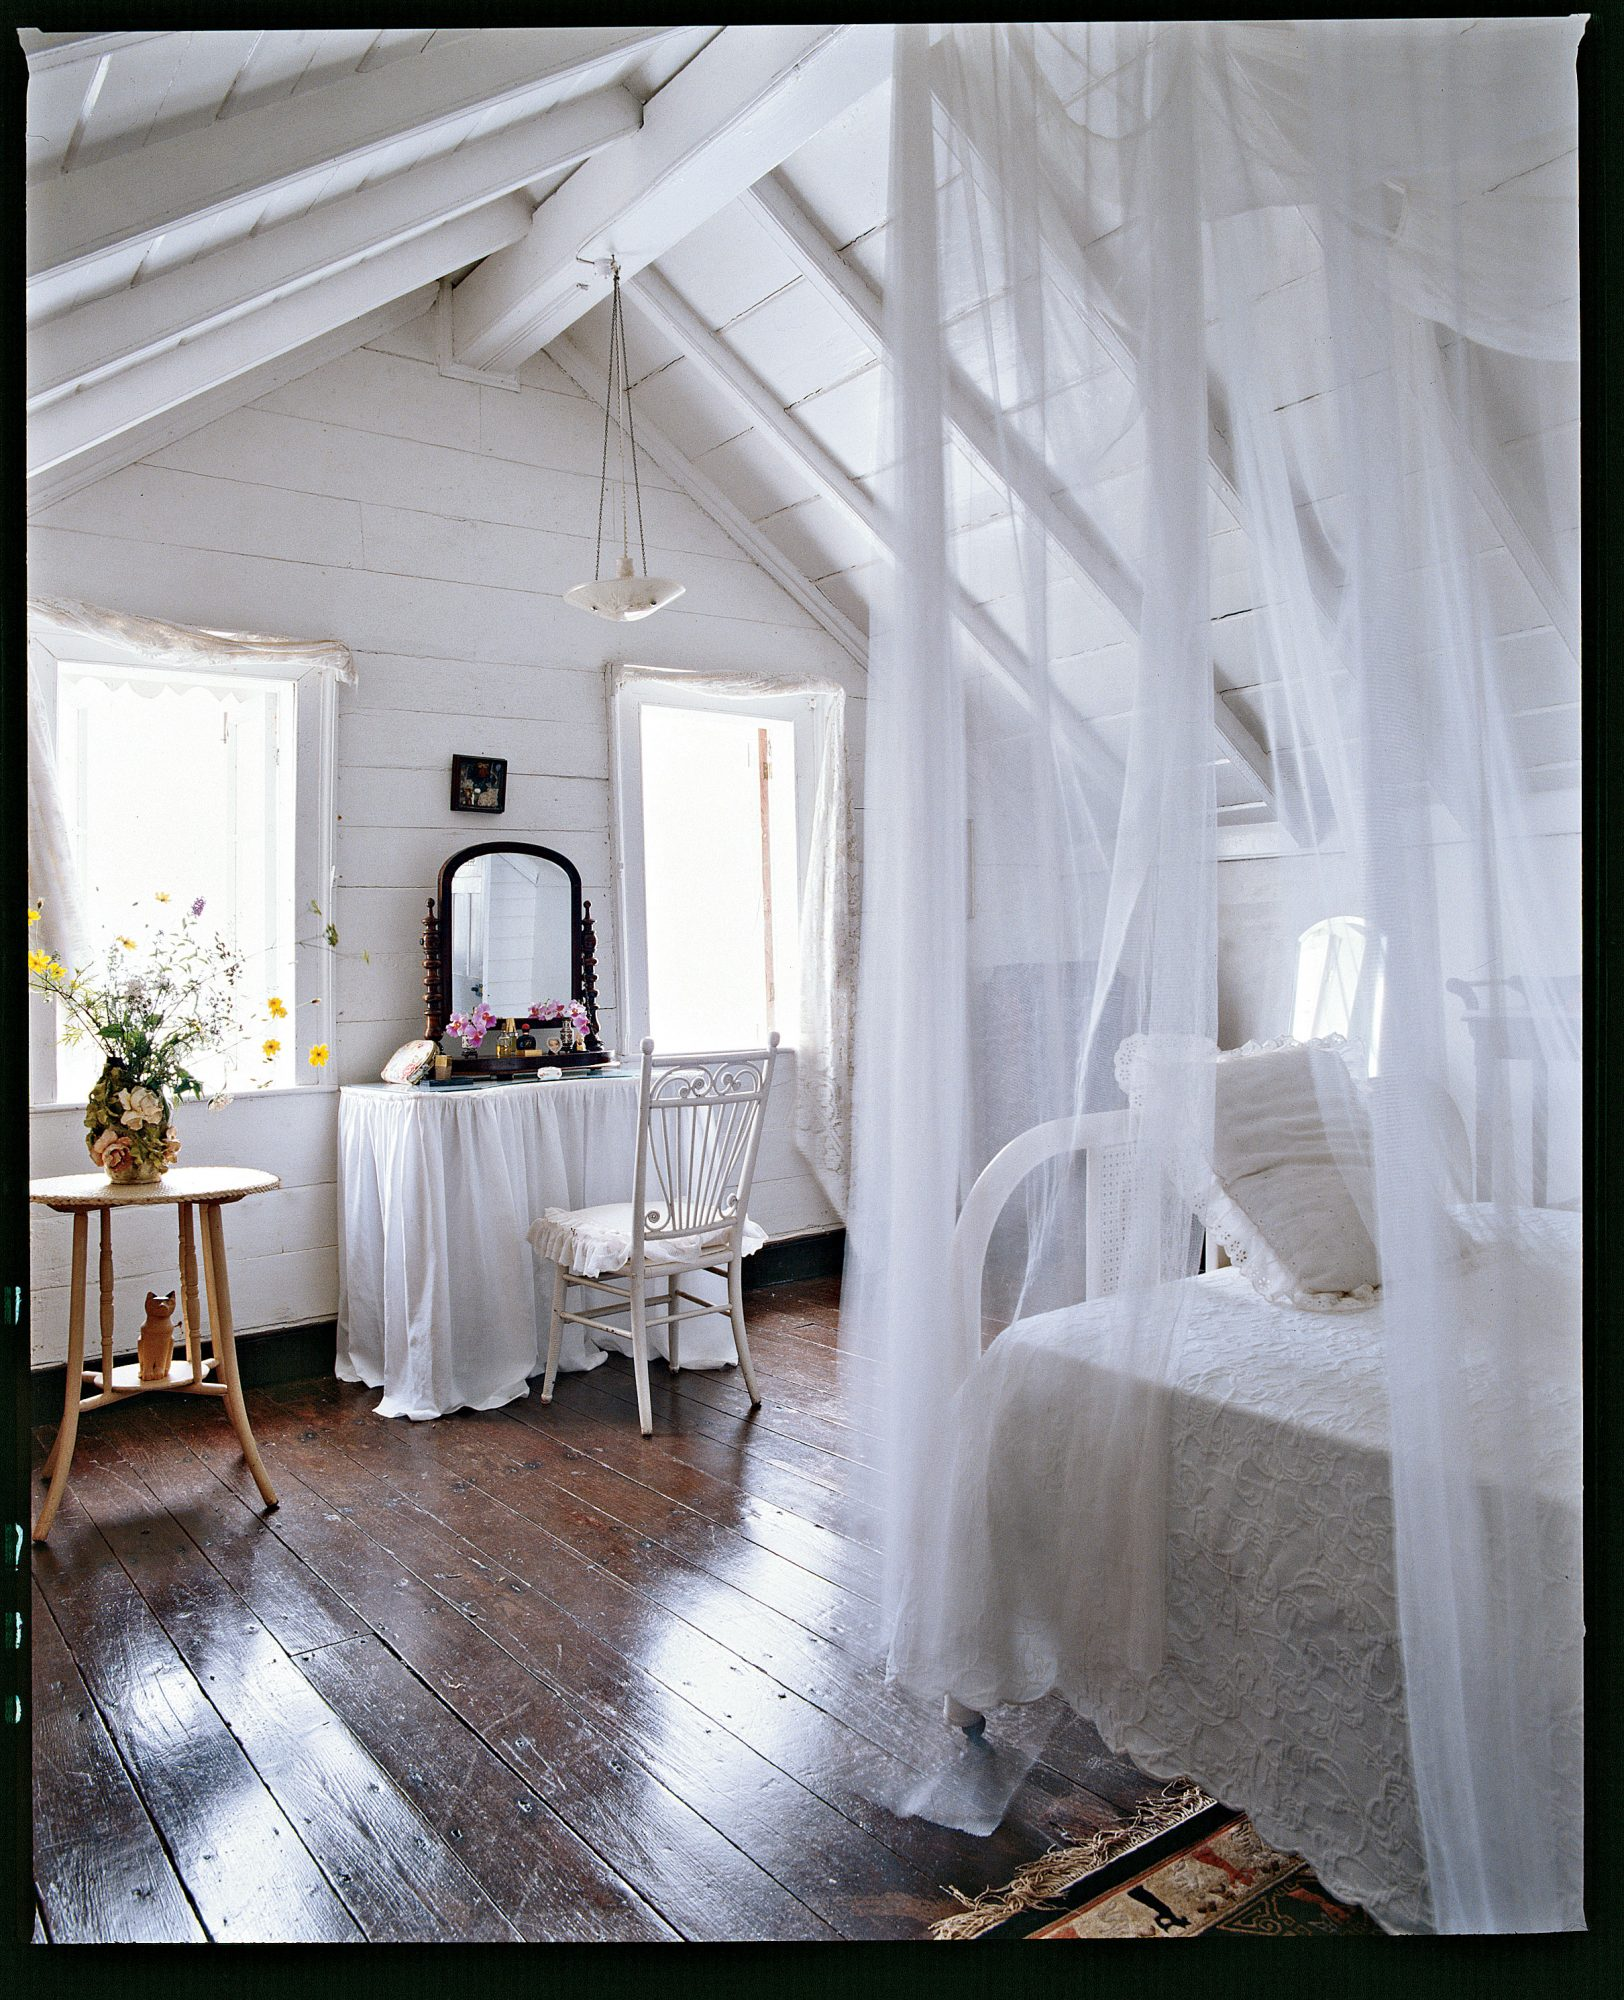 The dramatic high ceilings and mahogany floors in this sparse attic room are timeless. Sheer netting around the bed is a romantic detail that also comes in handy when you leave the windows open on summer nights.